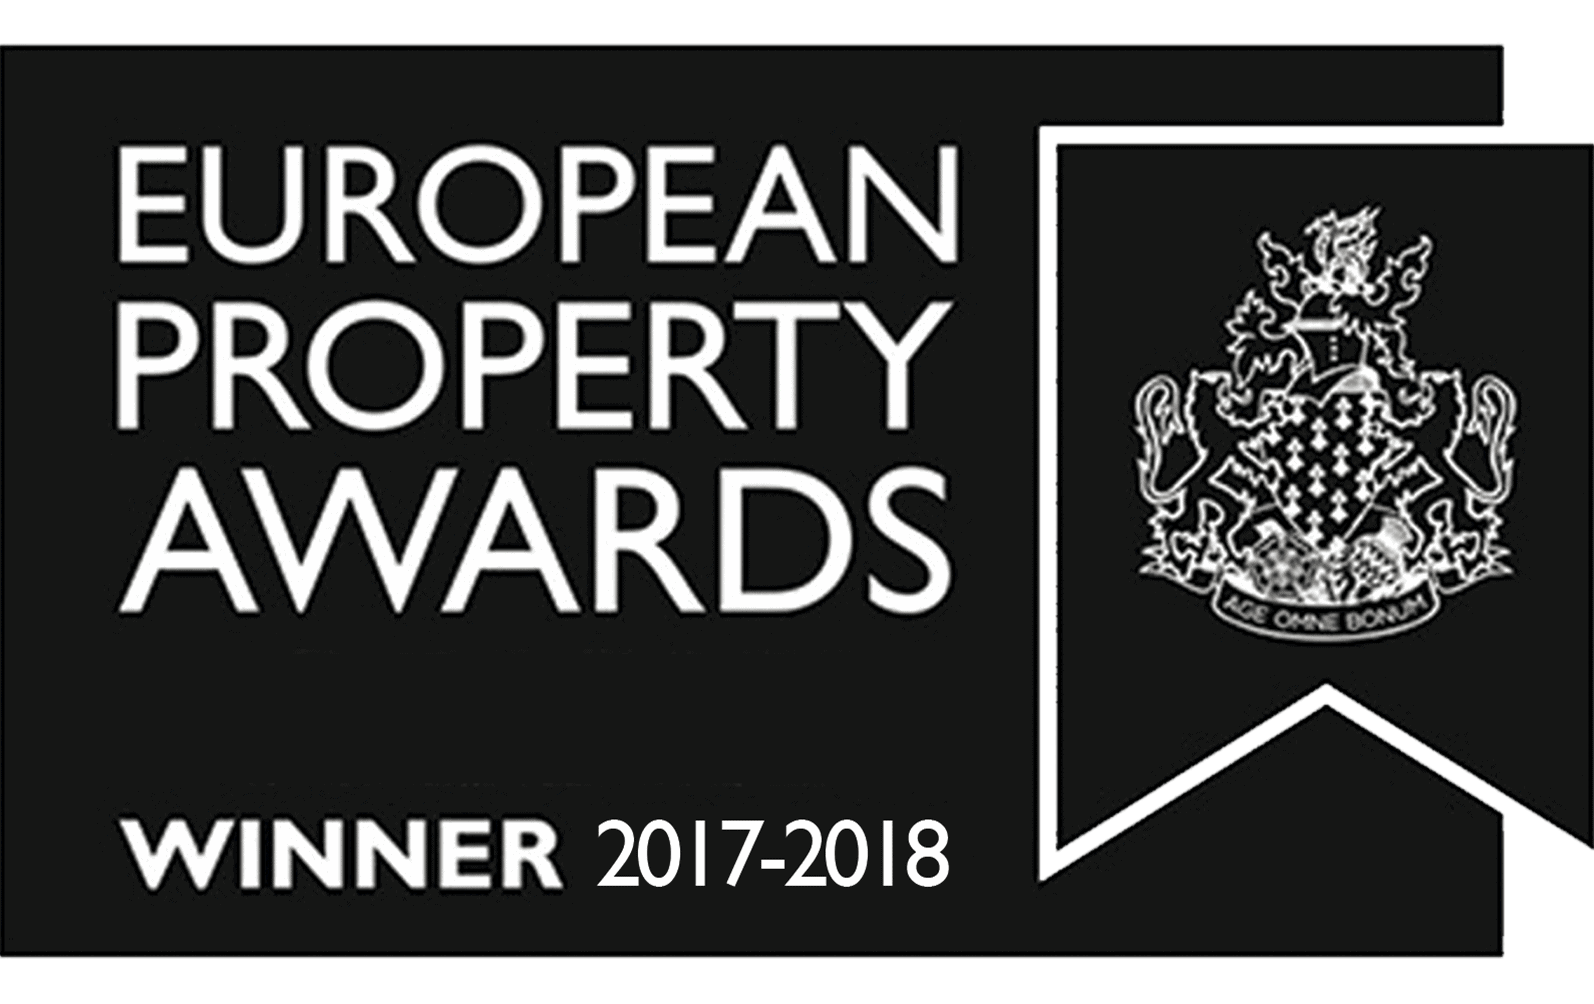 European Property Awards 2017-18